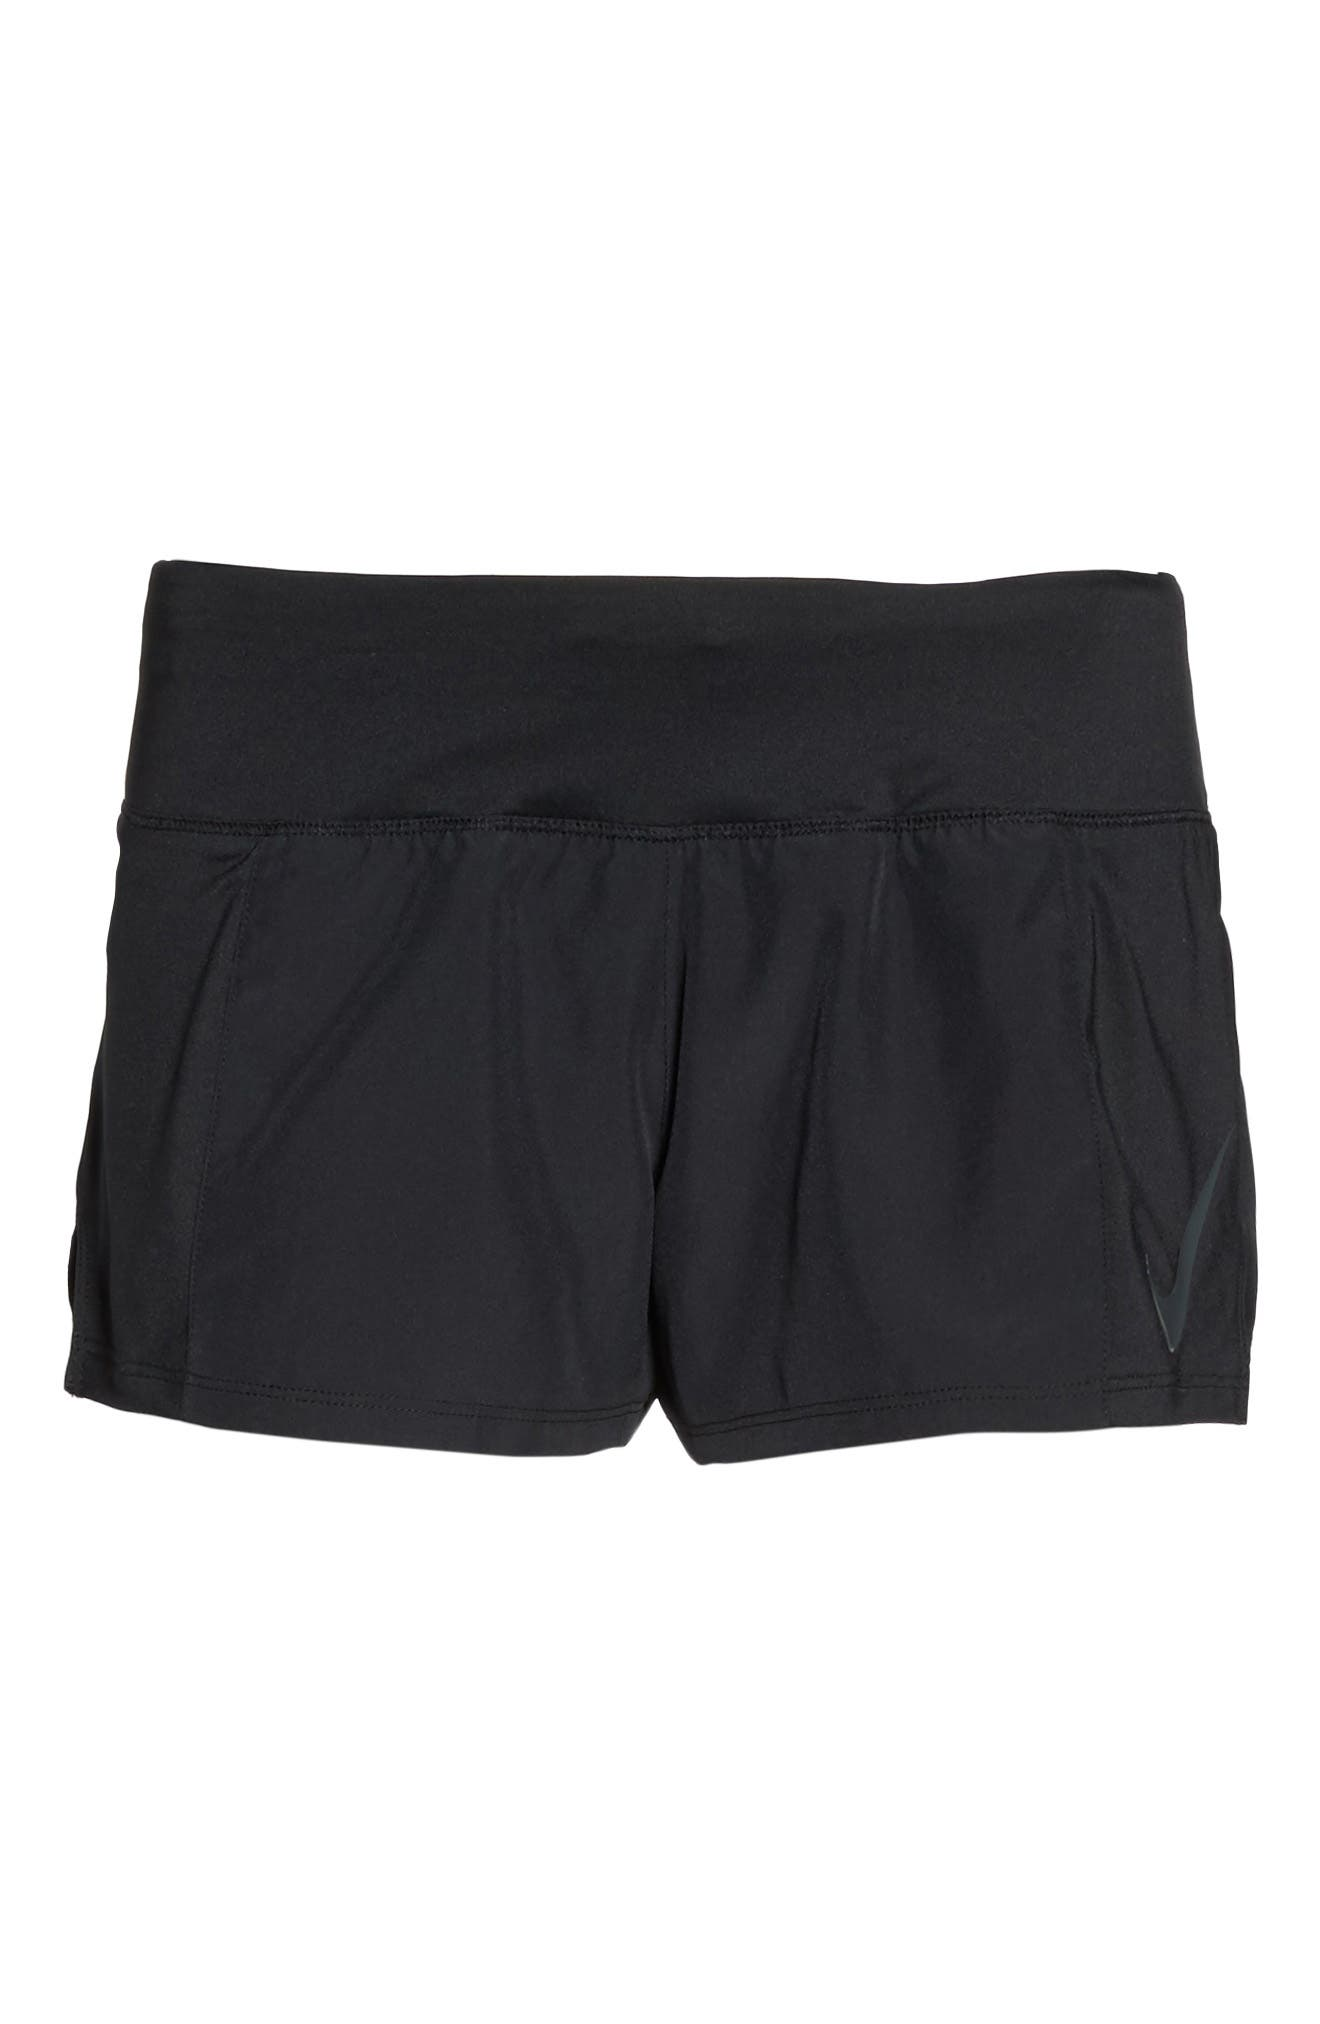 Dry Crew Running Shorts,                             Alternate thumbnail 6, color,                             Black/ Anthracite